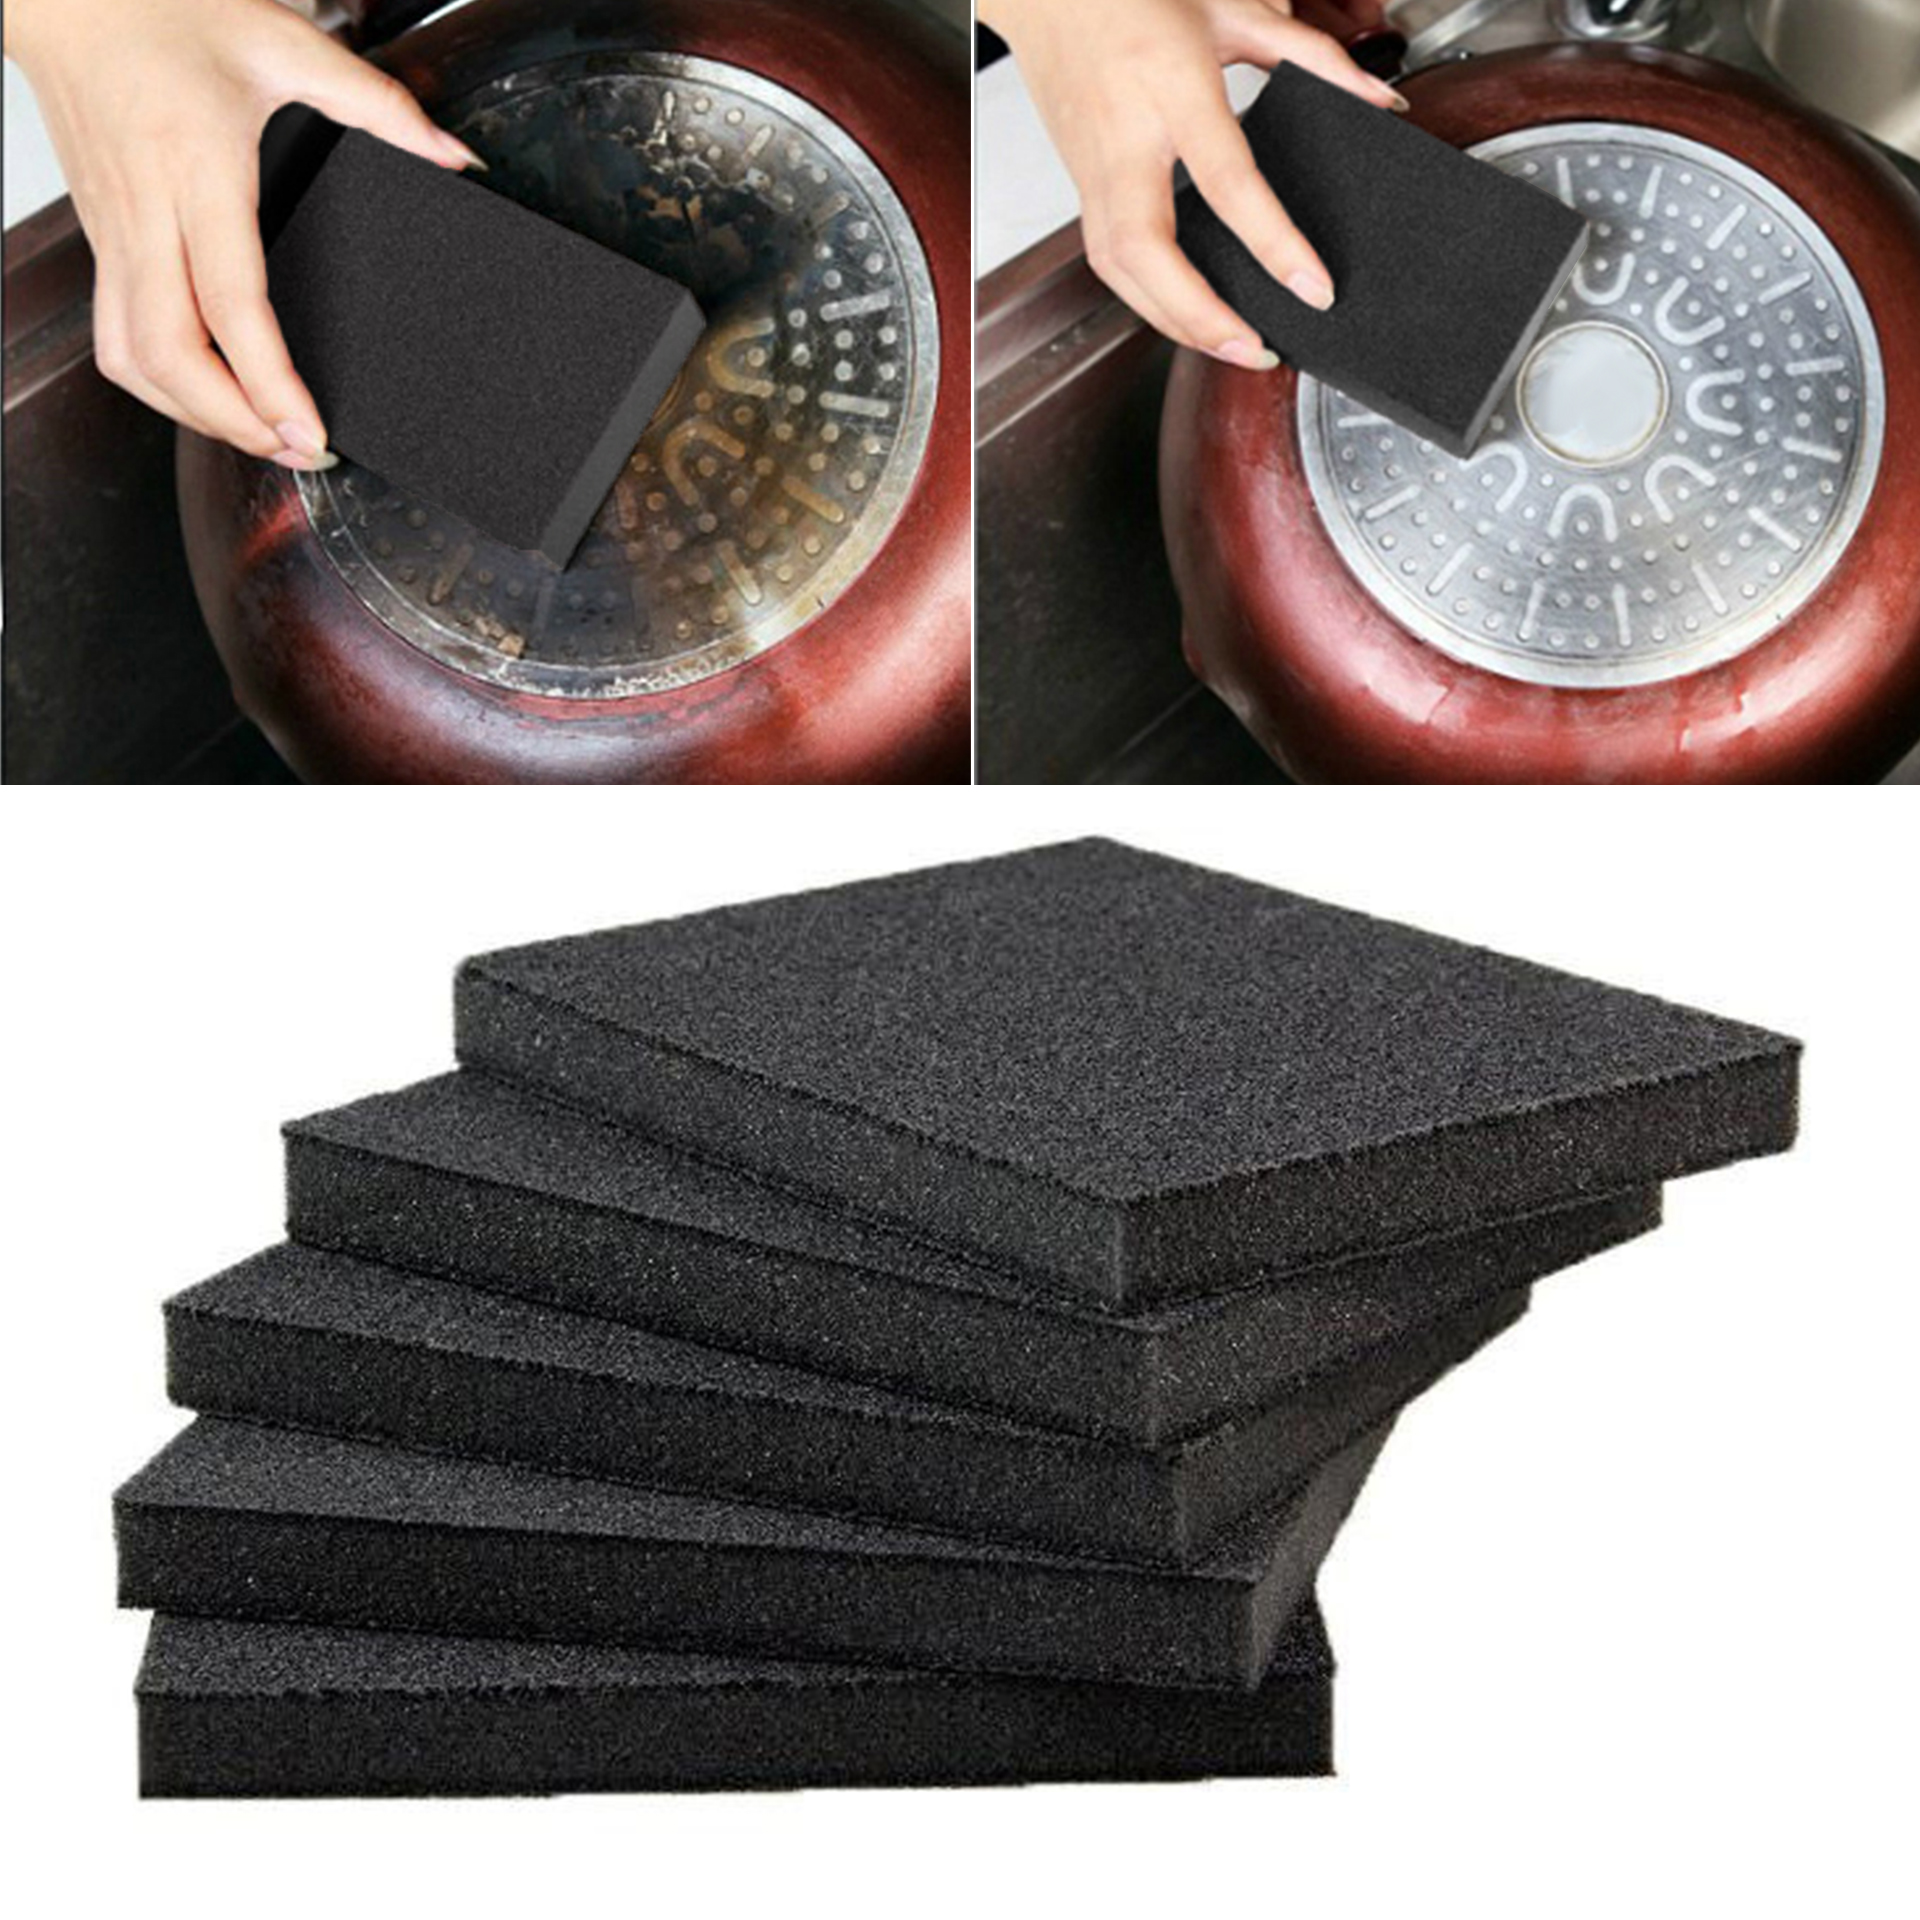 Magic Nano Emery Sponge For Outdoor Household Cleaning Cotton Eraser Multifunctional Tools Descaling Clean Rub PotMagic Nano Emery Sponge For Outdoor Household Cleaning Cotton Eraser Multifunctional Tools Descaling Clean Rub Pot